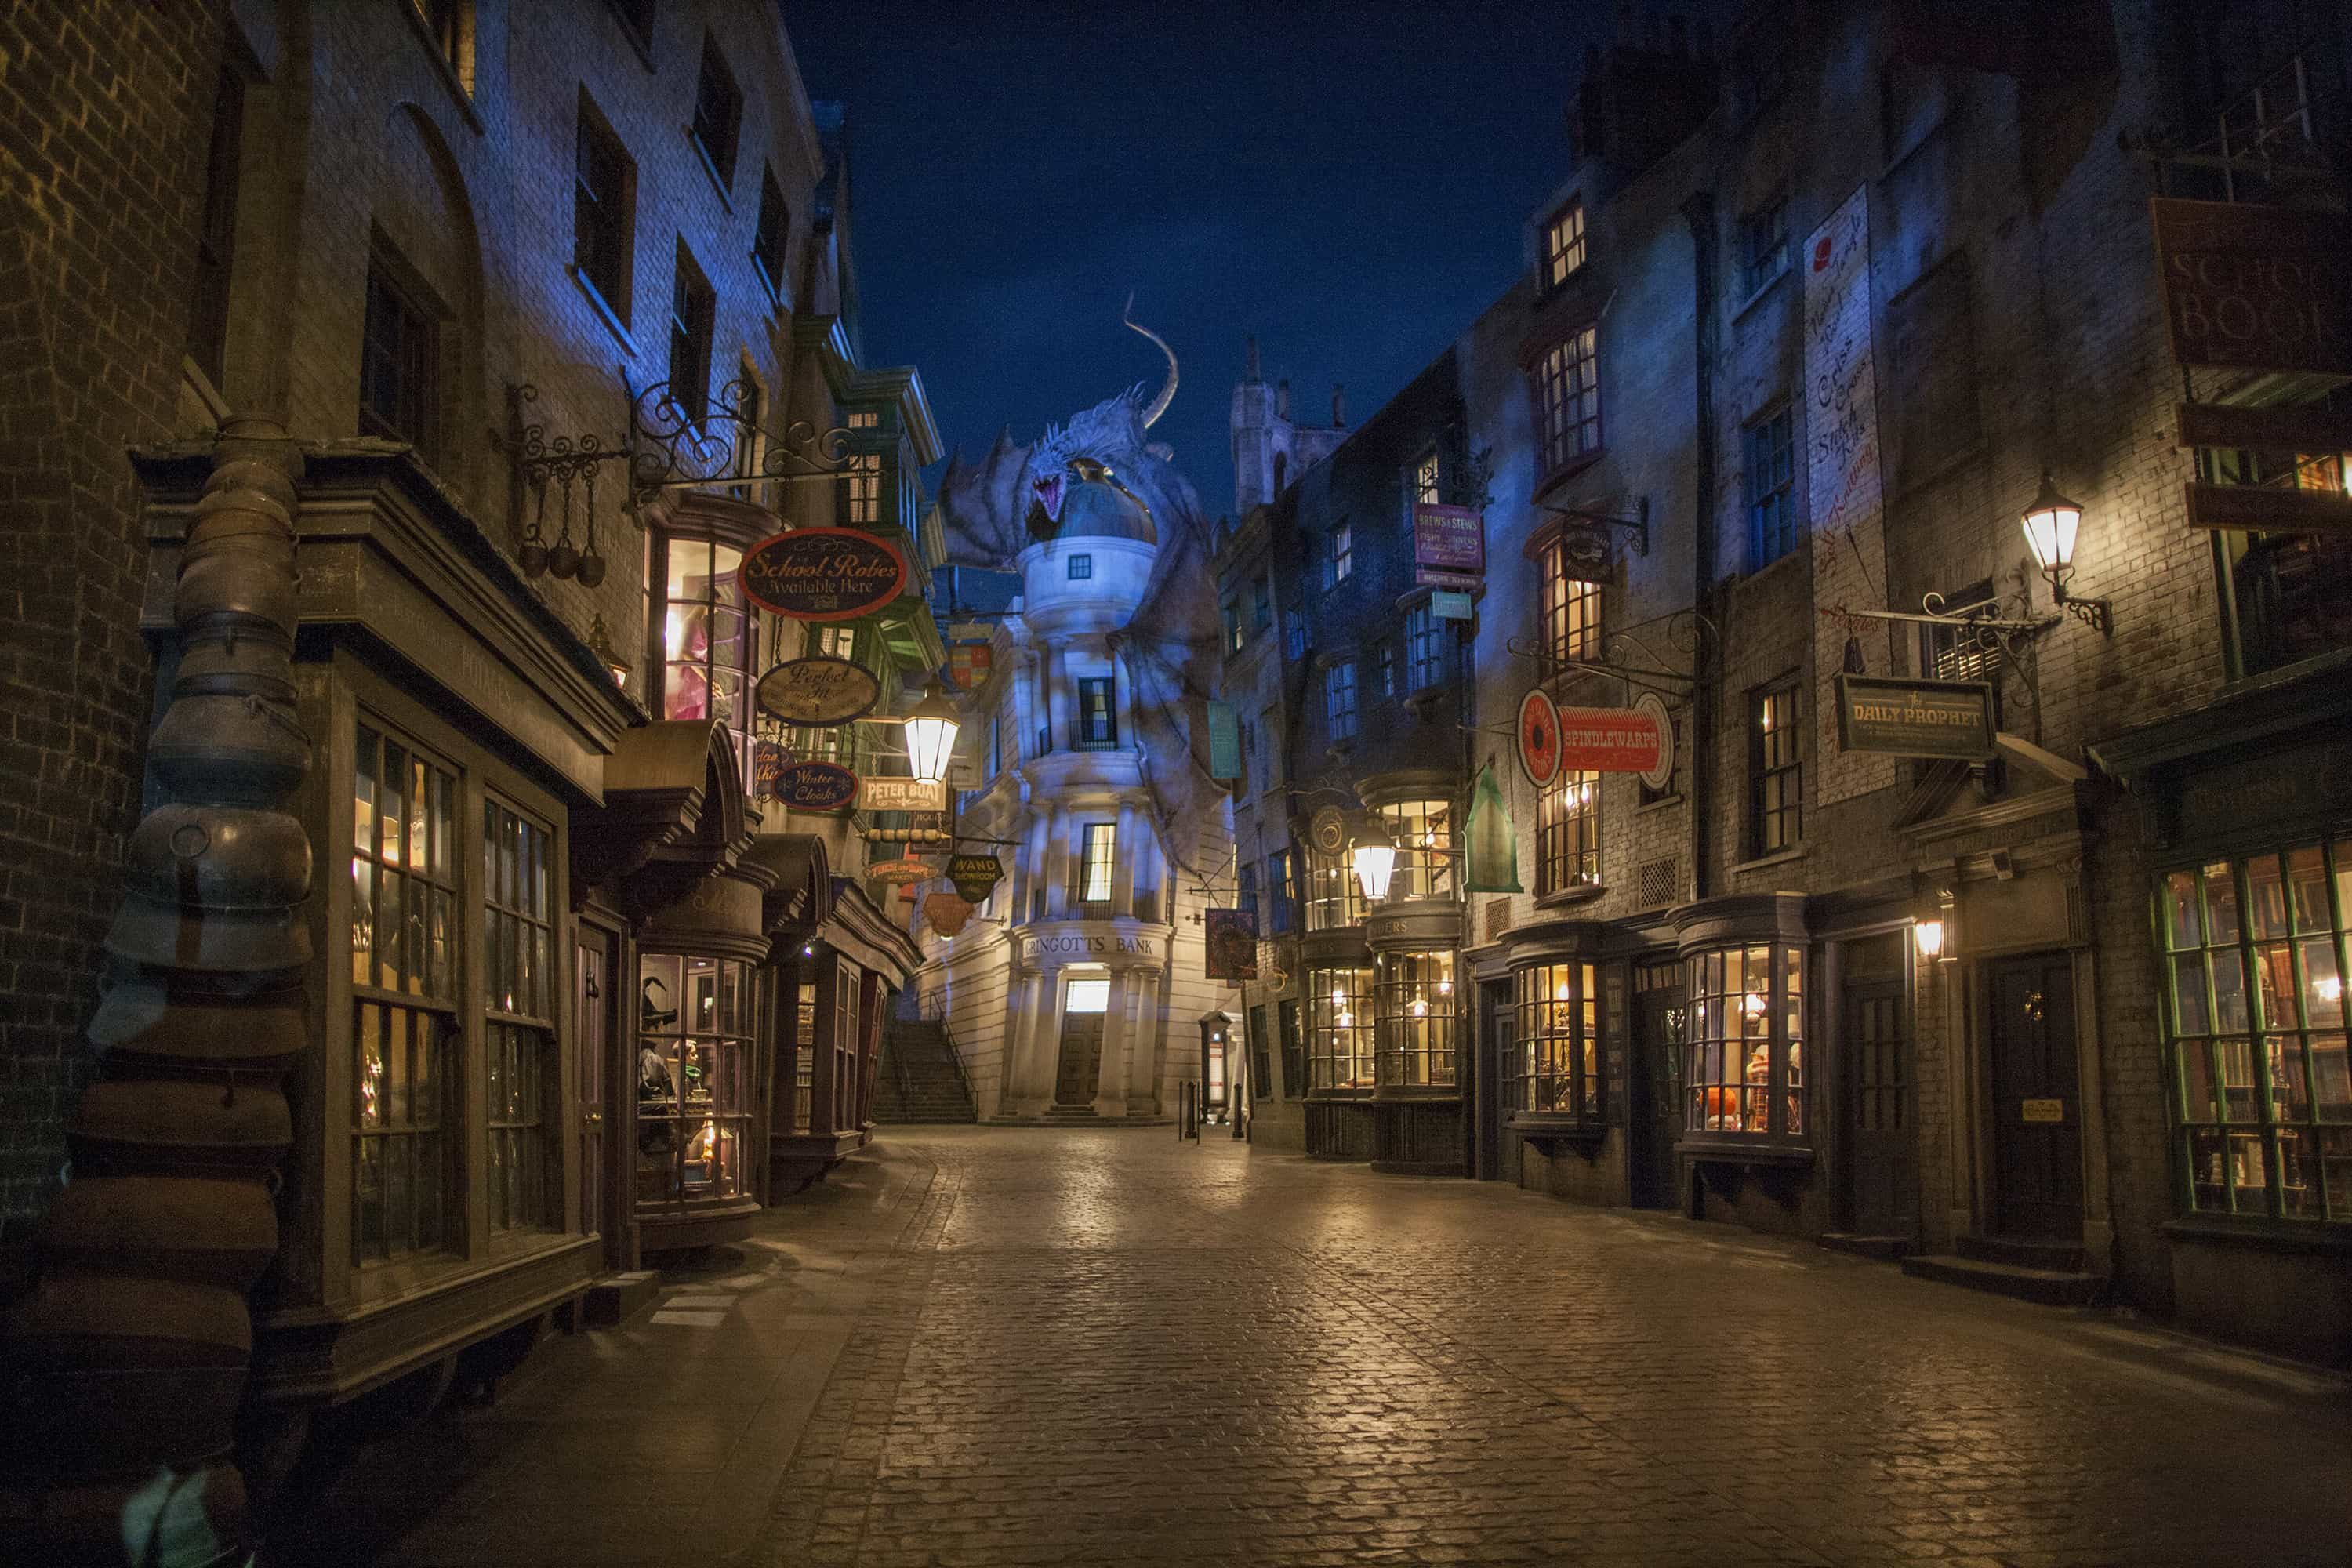 5 musical scores you'll remember when visiting the Wizarding World